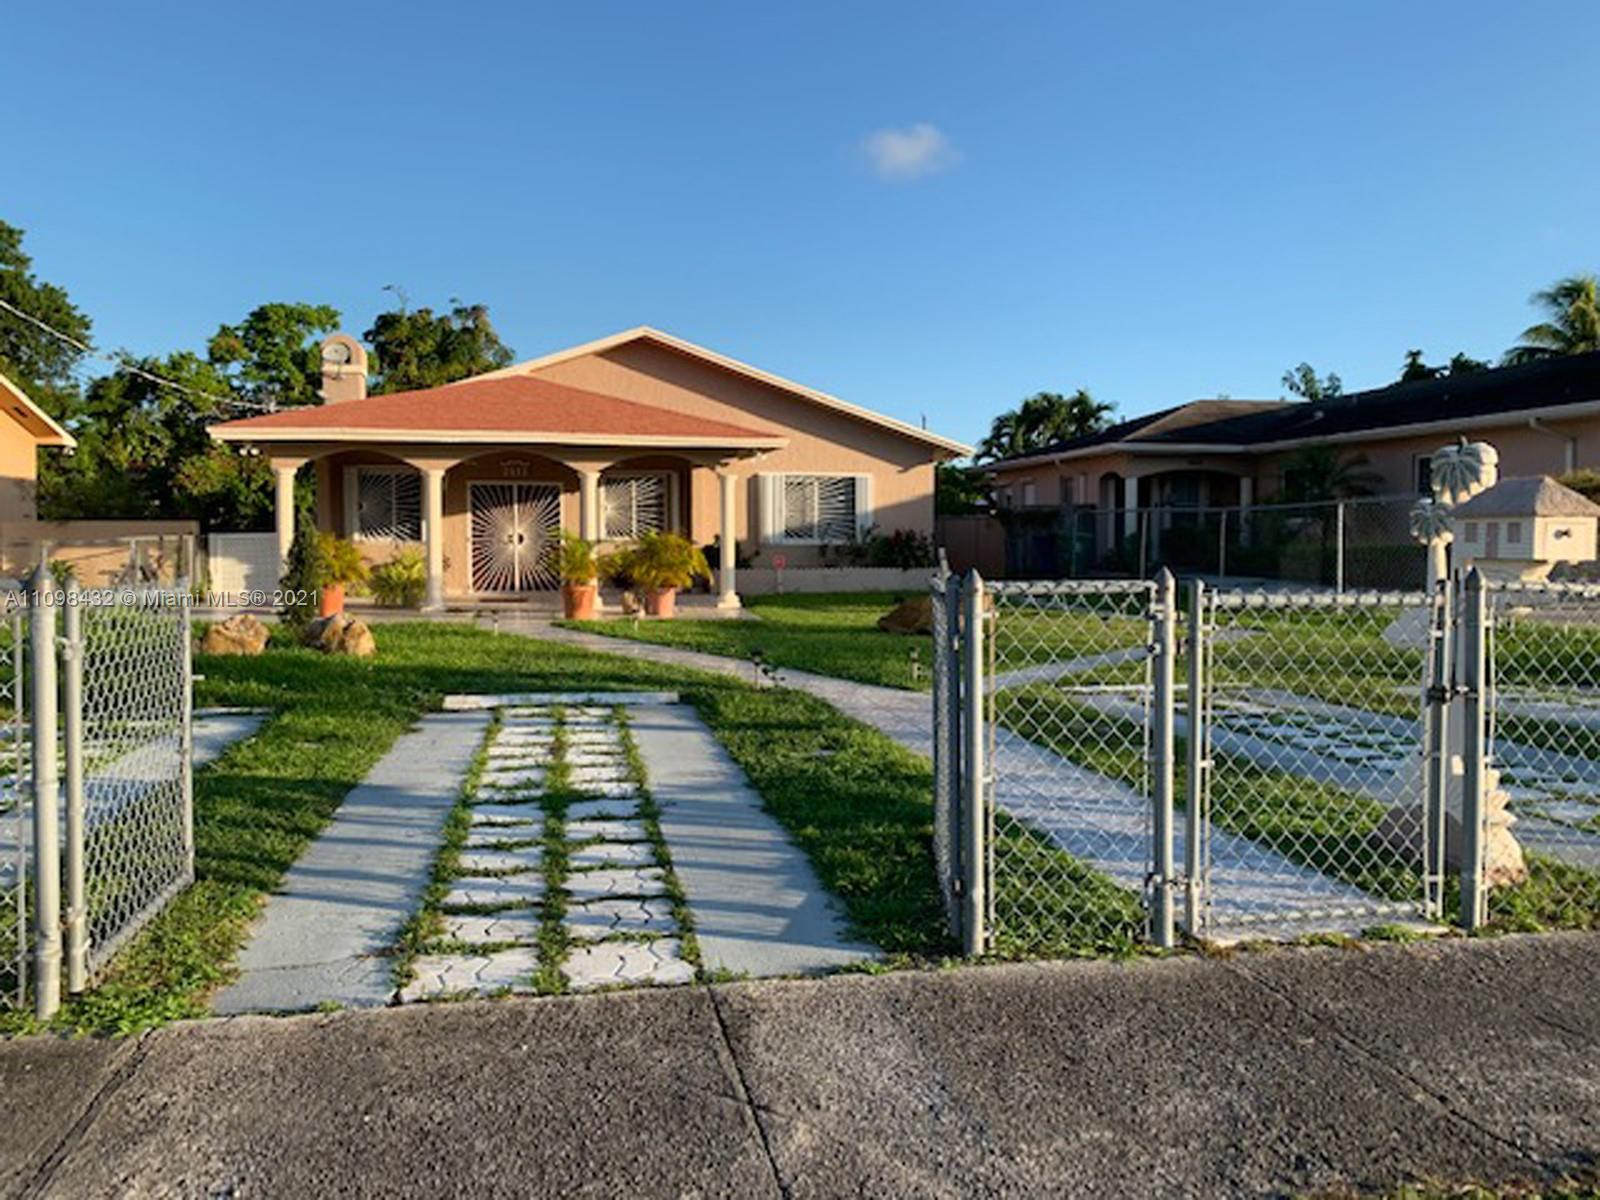 Recently renovated and conveniently located Duplex. Tiled floors throughout each unit. Accordion shutters and updated kitchen and Master bath in the 2/2 unit. Separate electricity meters and laundry room with washer and dryer for each unit. Utility shed and covered back porch. Make some upgrades and boost your rental income. Easy access to 836 expressway, a few blocks from Coral Gables, very close to Miami International Airport, Magic City Casino and Grapeland Water Park.